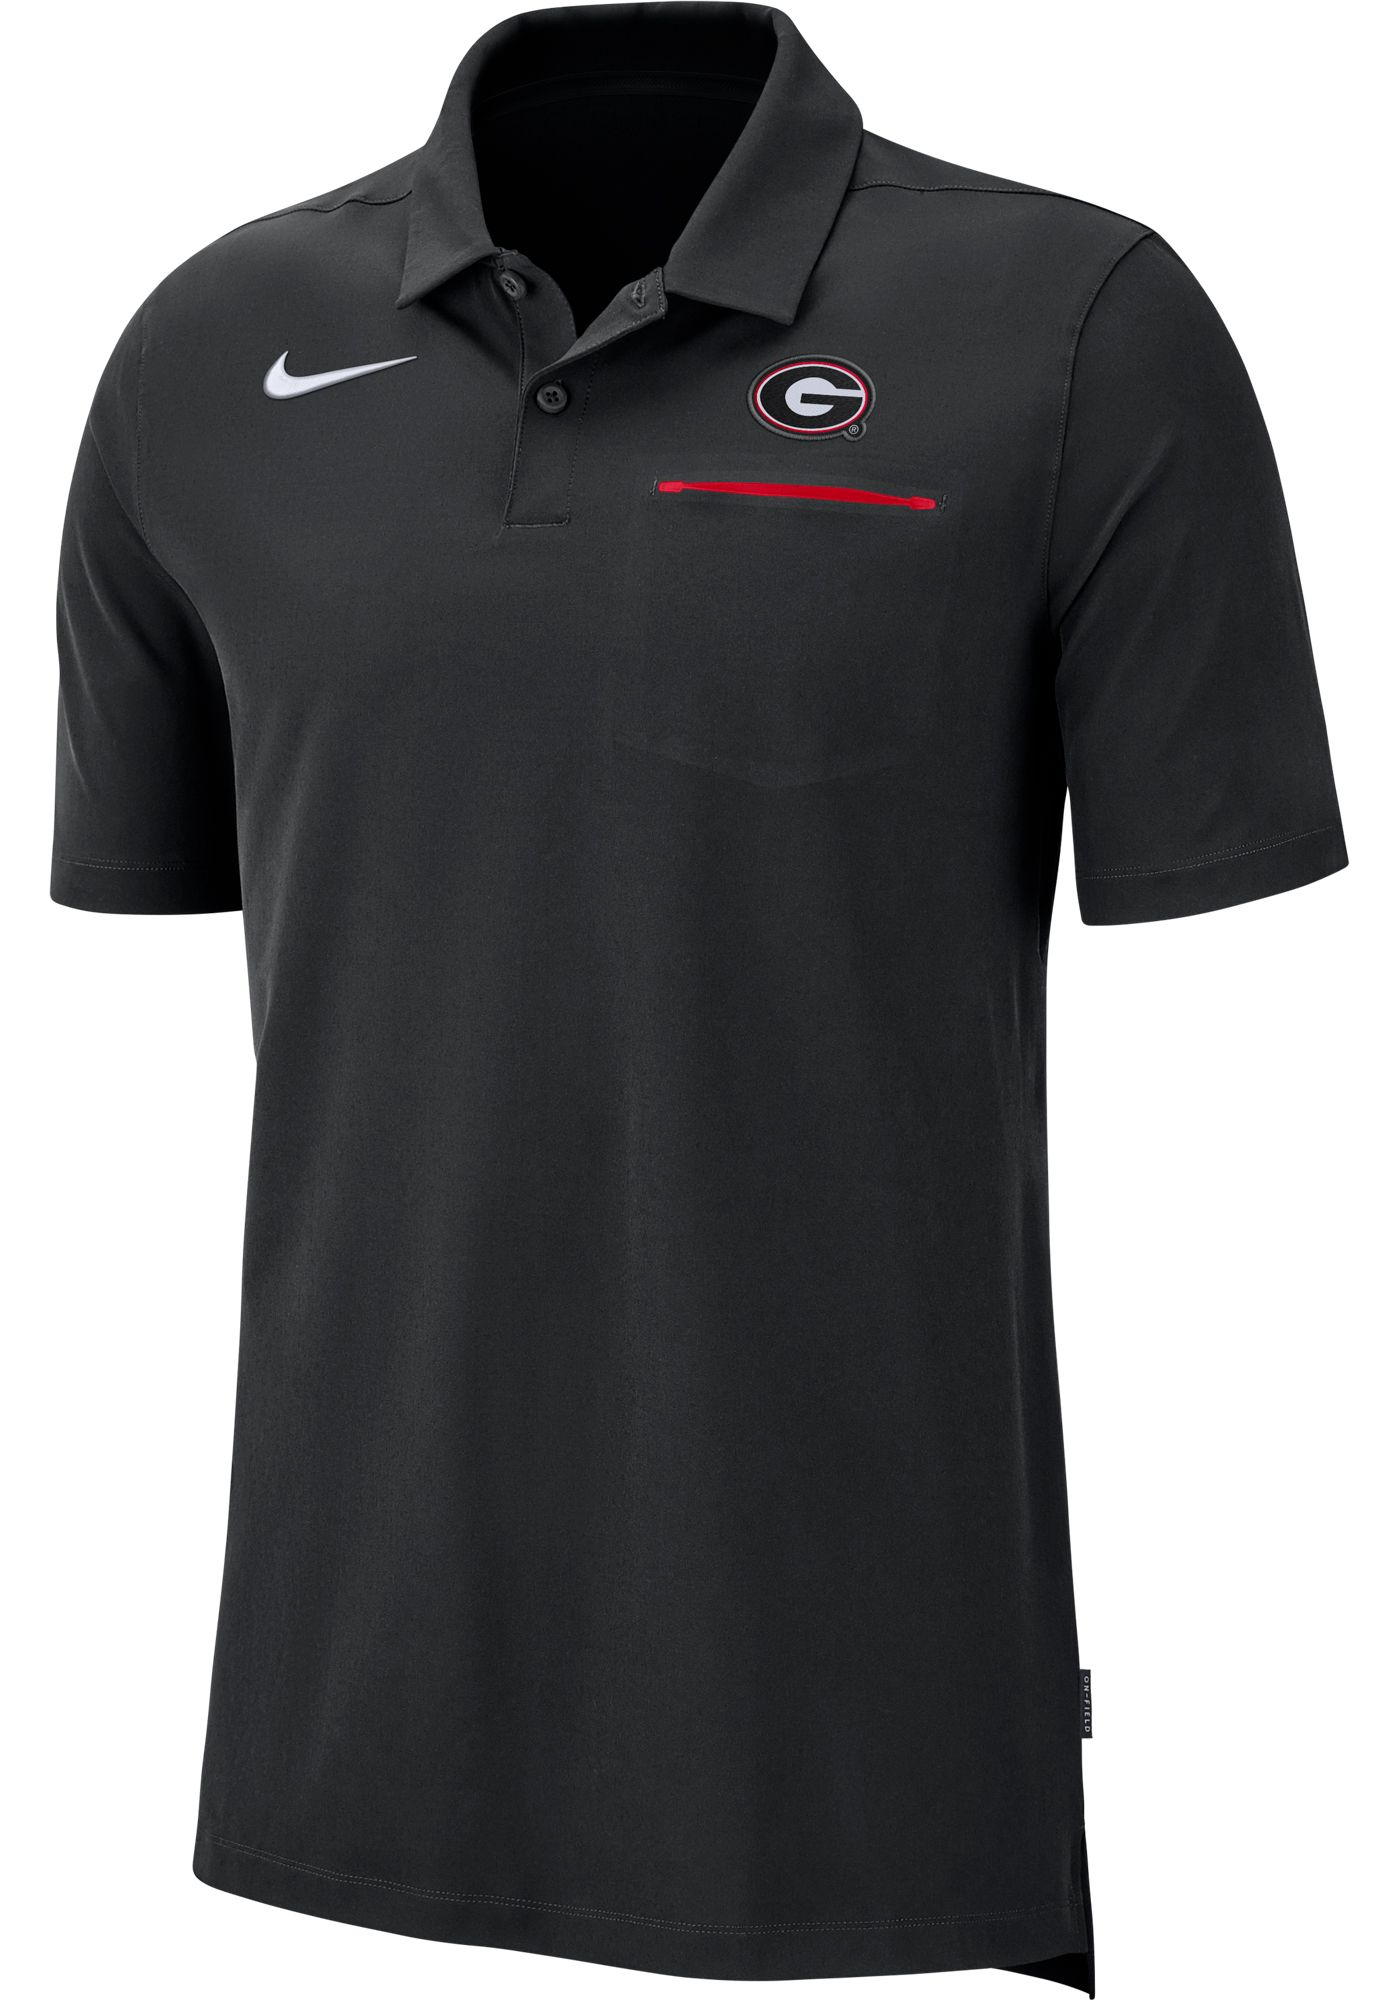 Nike Men's Georgia Bulldogs Dri-FIT Elite Football Sideline Black Polo